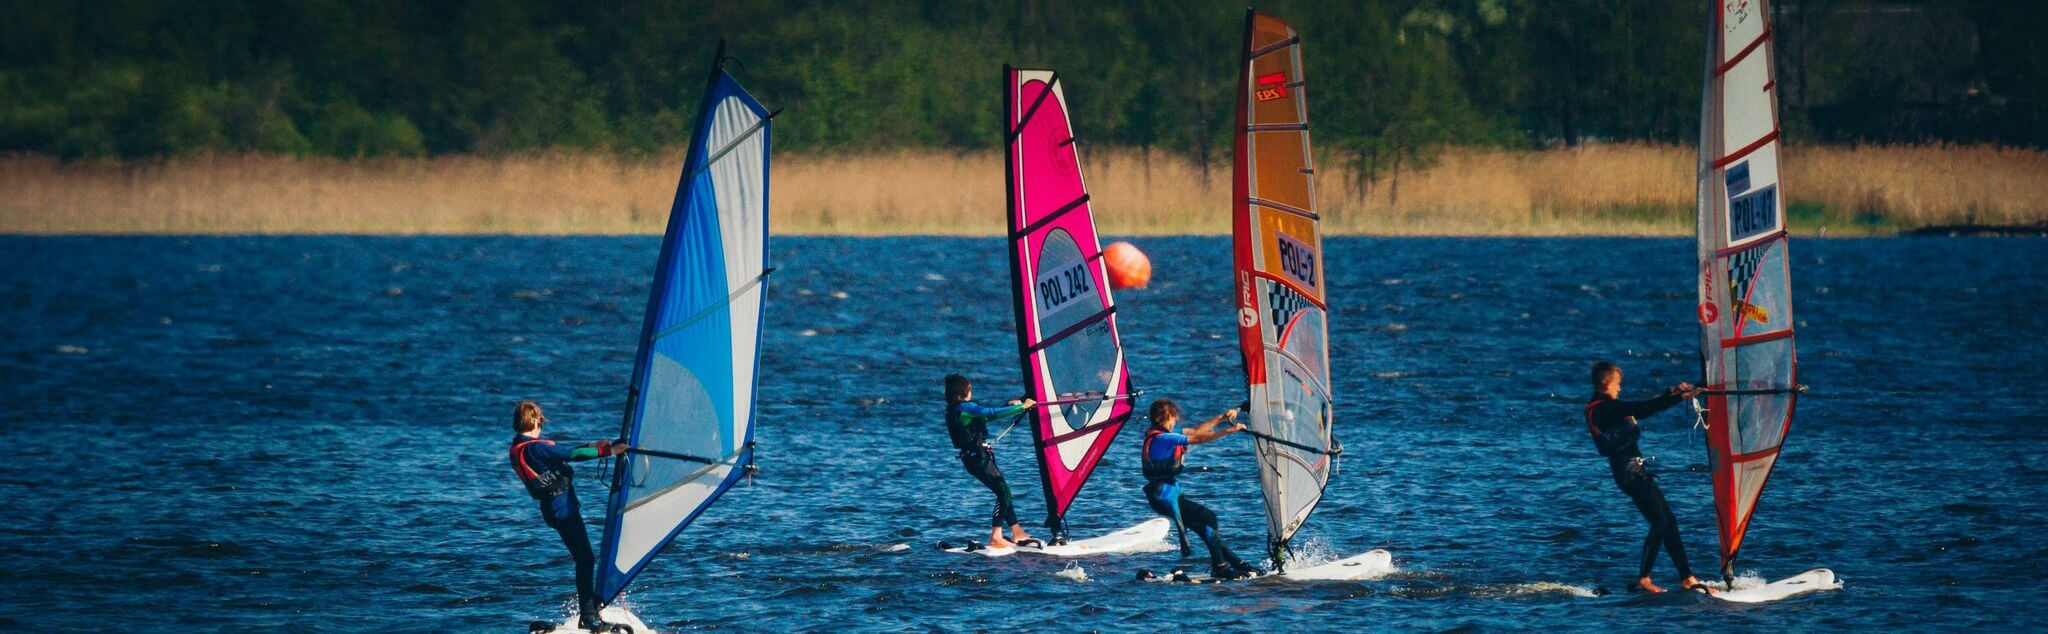 Windsurfing in Lancashire